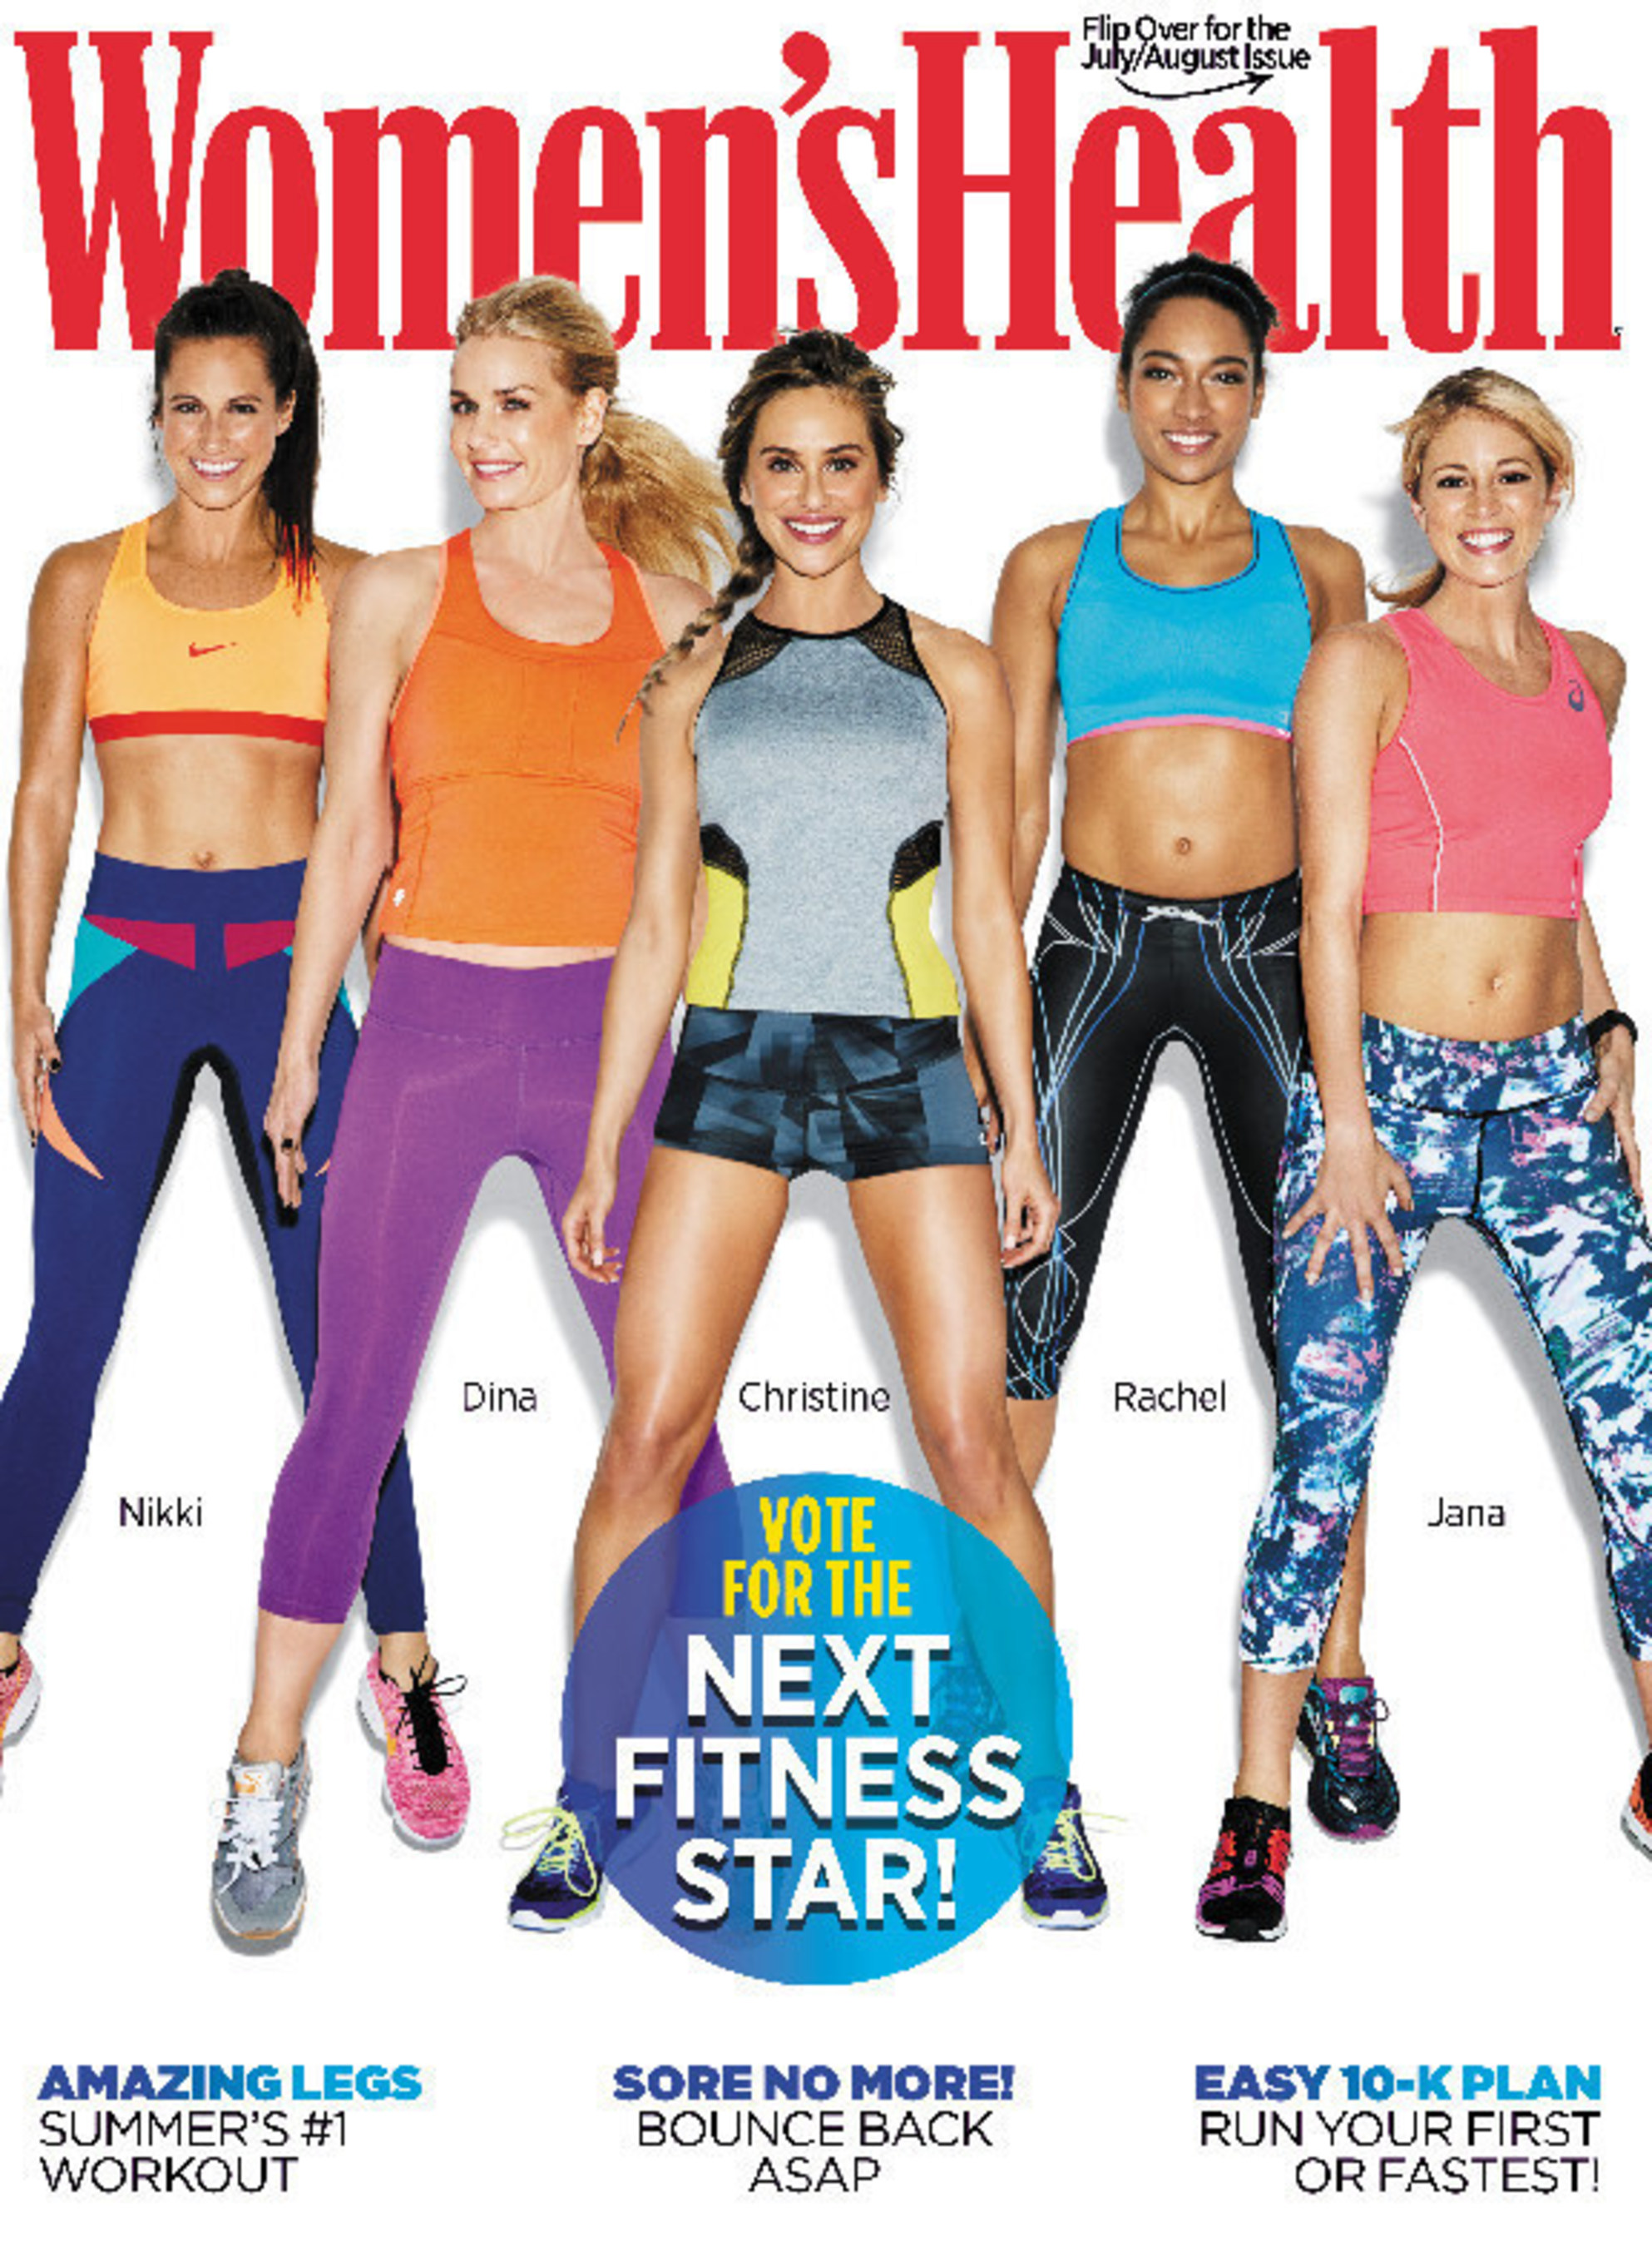 Women's Health Magazine Announces Finalists For 3rd Annual 'Next Fitness Star' Competition